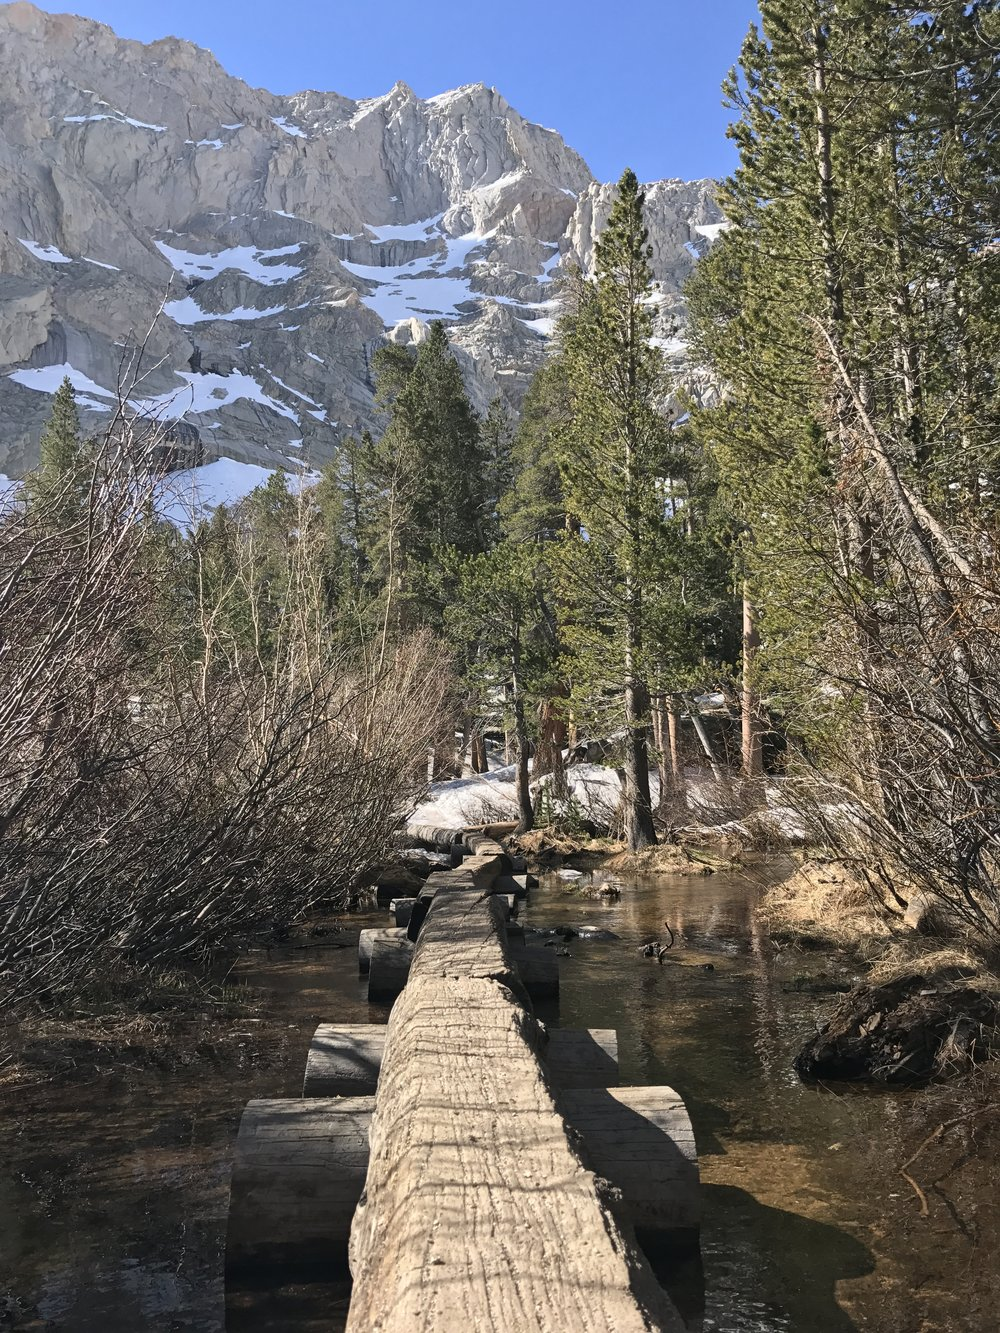 The only turn hikers need to make to reach the lake is shortly after this log bridge.